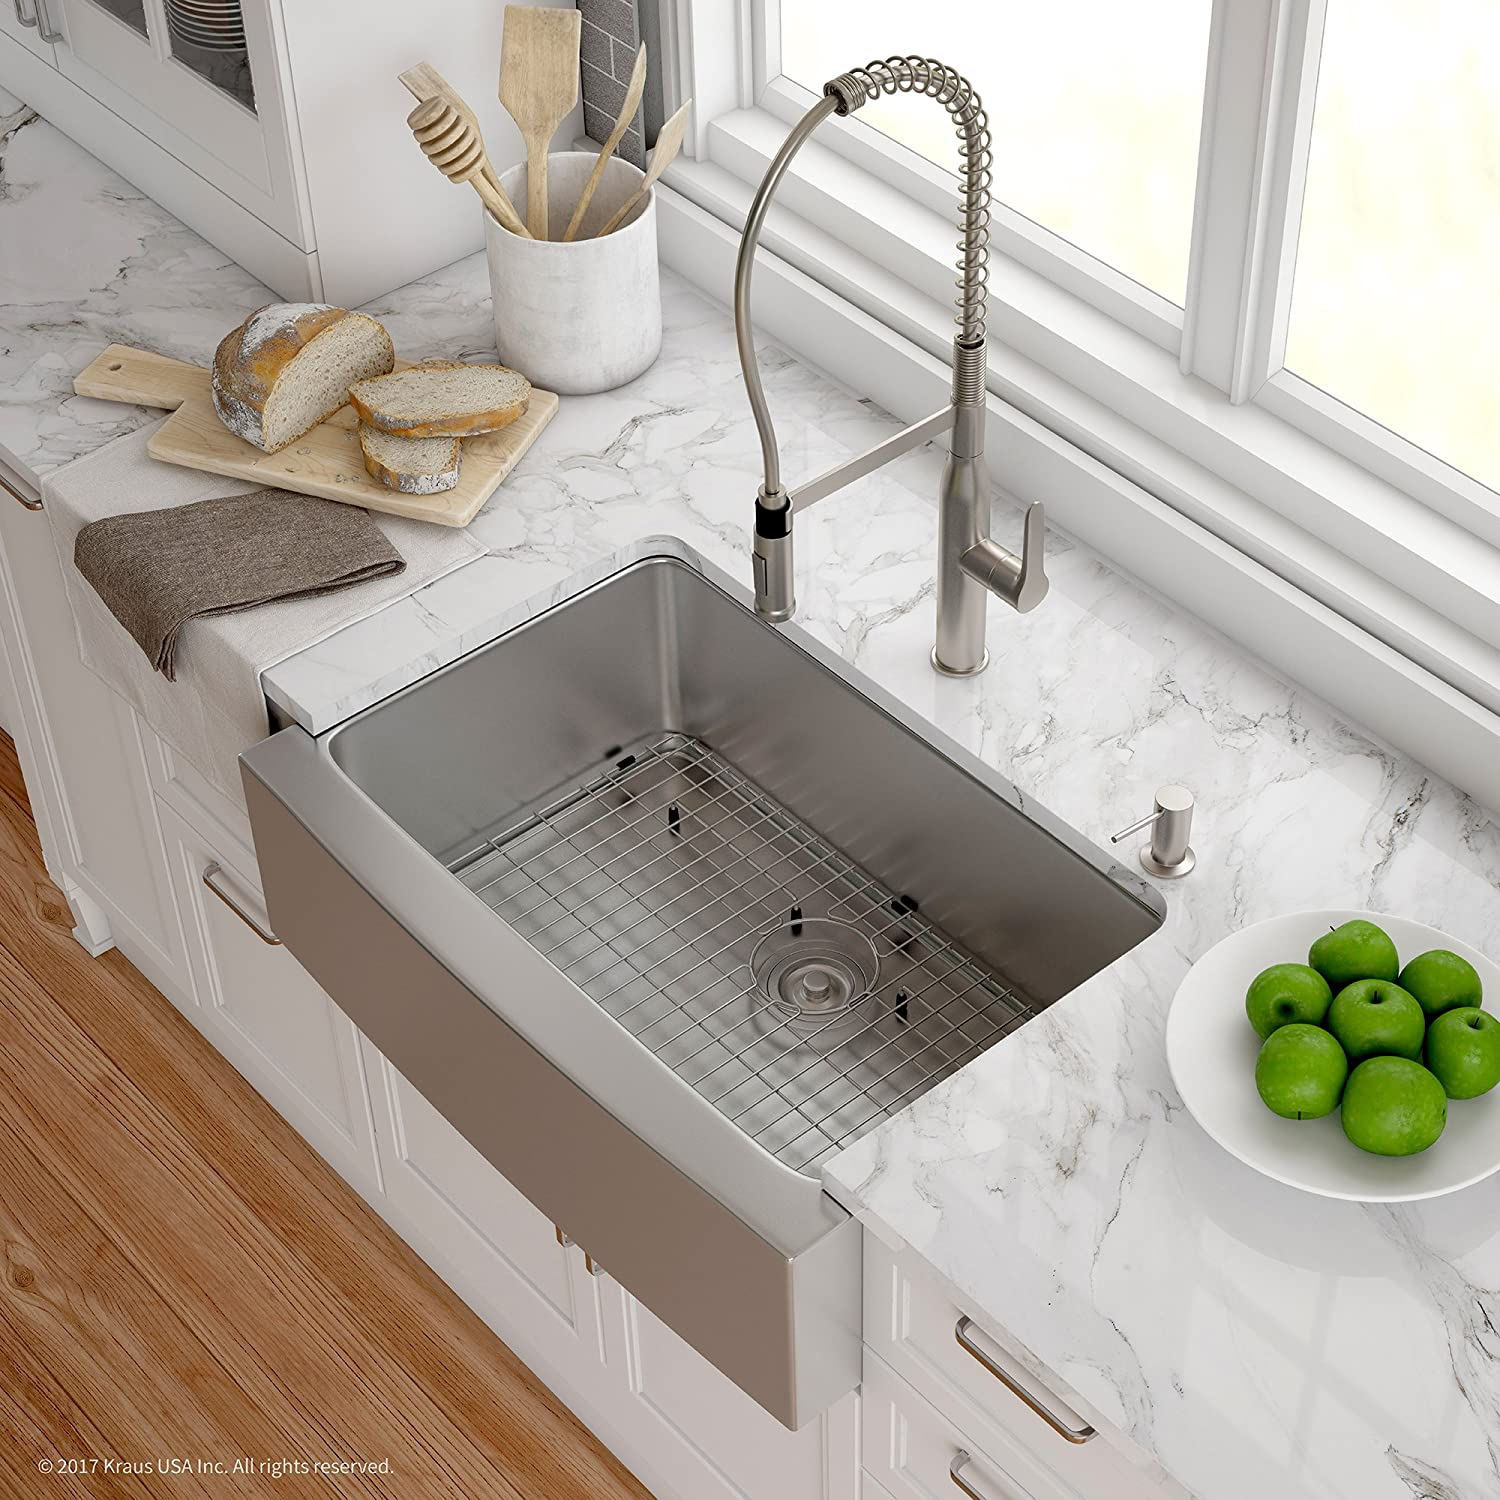 Kraus KHF200-30-1650-41SS 30 Inch Combo with Single Bowl 16 Gauge Apron-Front Farmhouse Sink and Nola Commercial Kitchen Faucet with Soap Dispenser in Stainless Steel